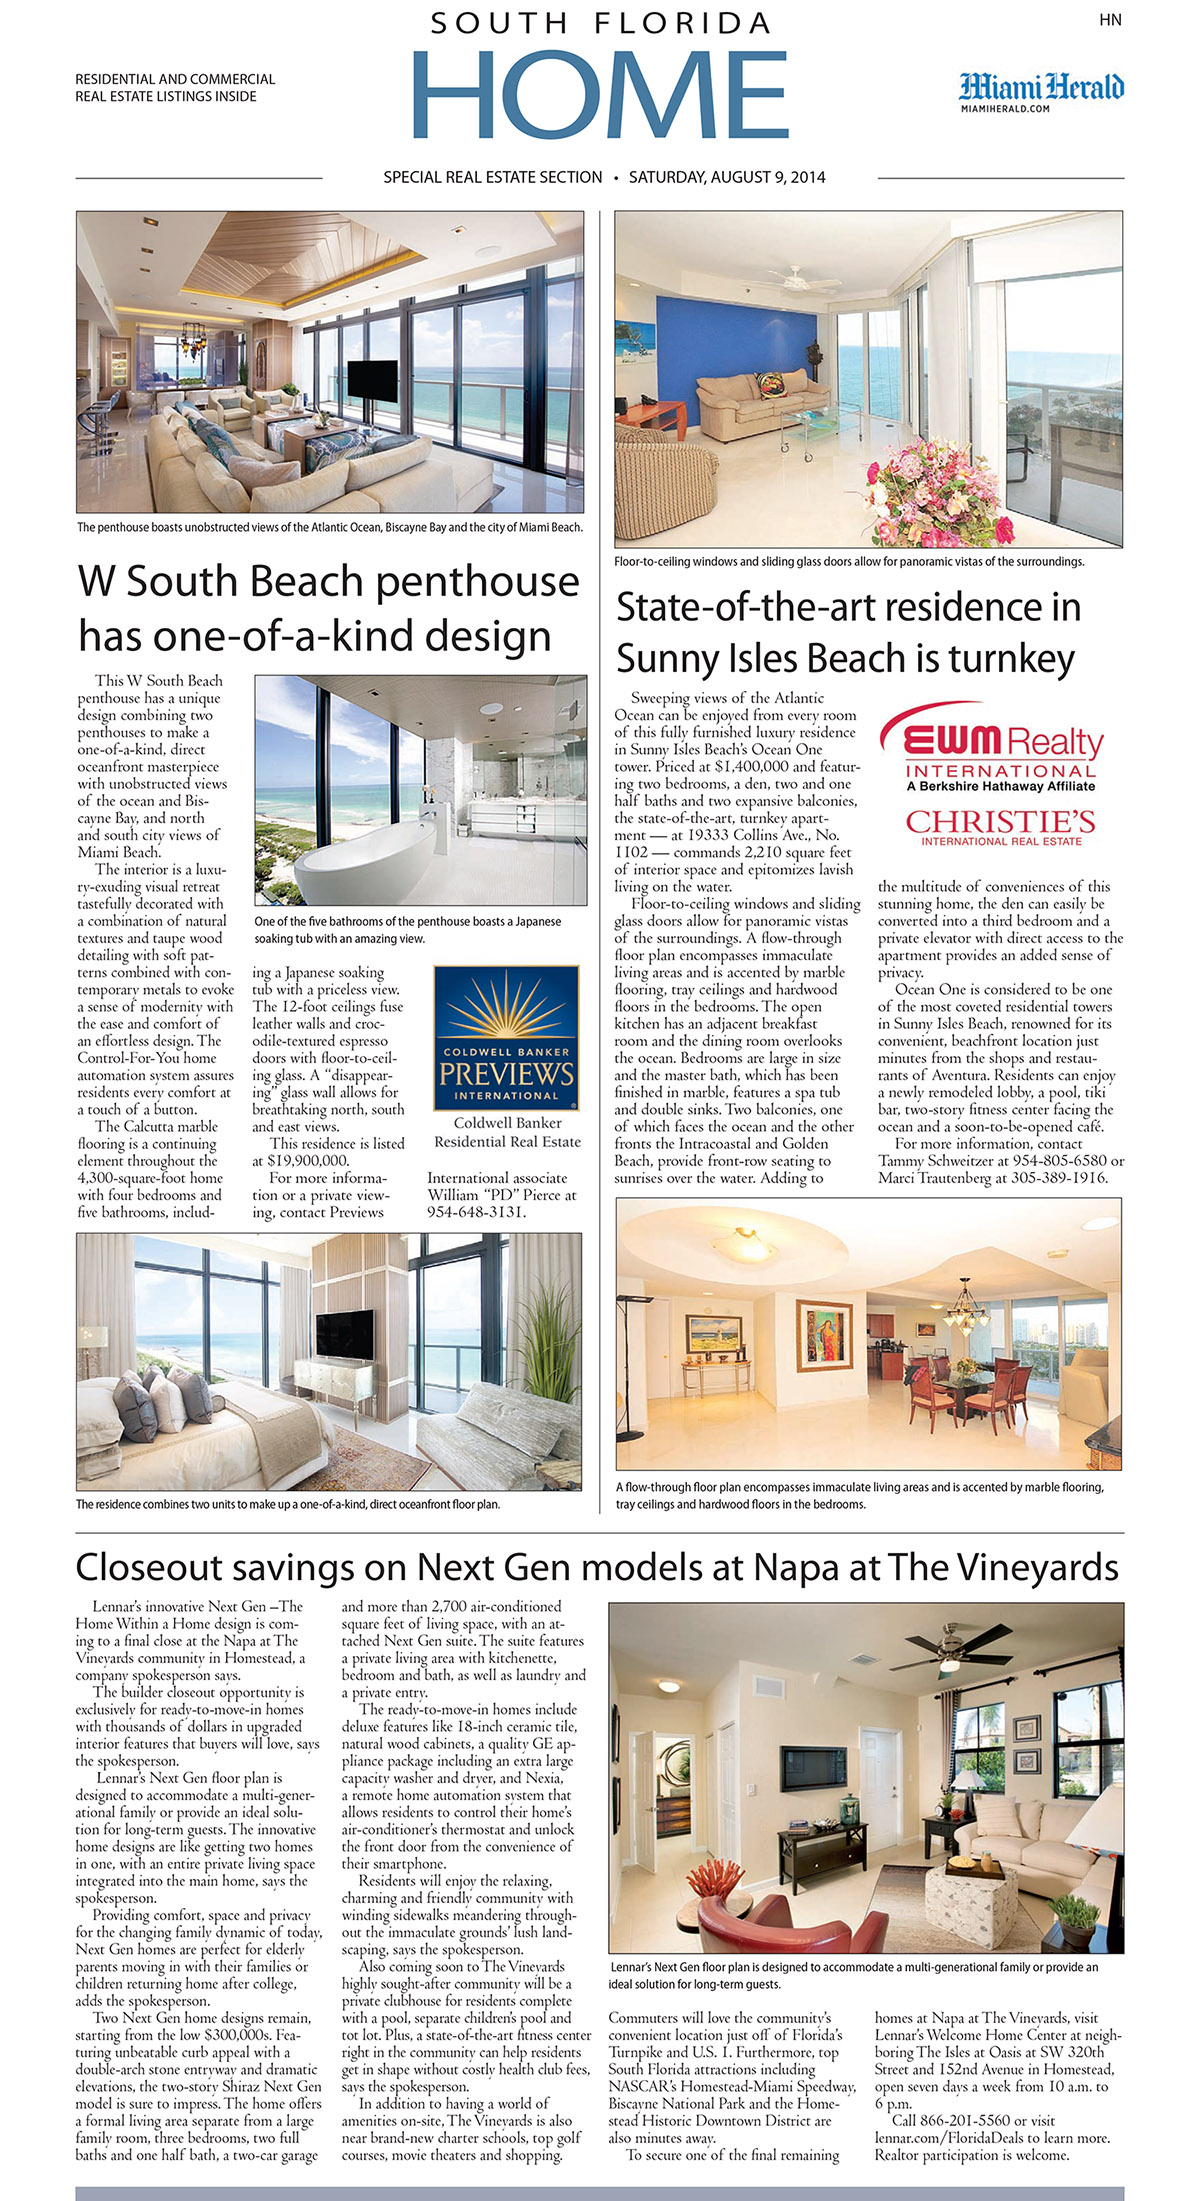 Miami Herald North Front Cover Aug 9